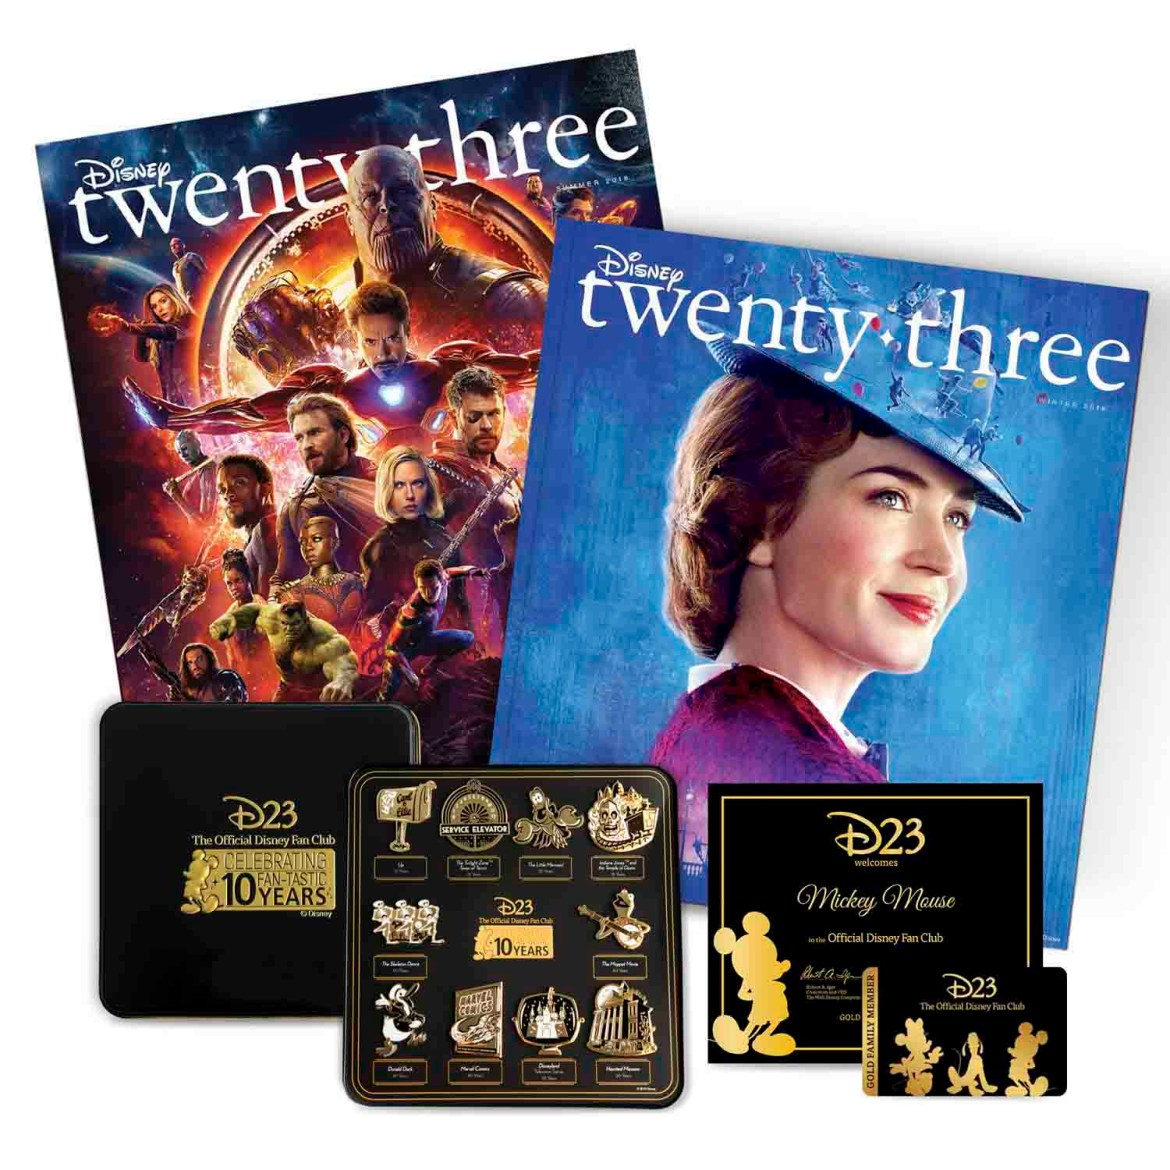 Check Out The D23 2019 Gold Member Gift In Honor Of The 10th anniversary